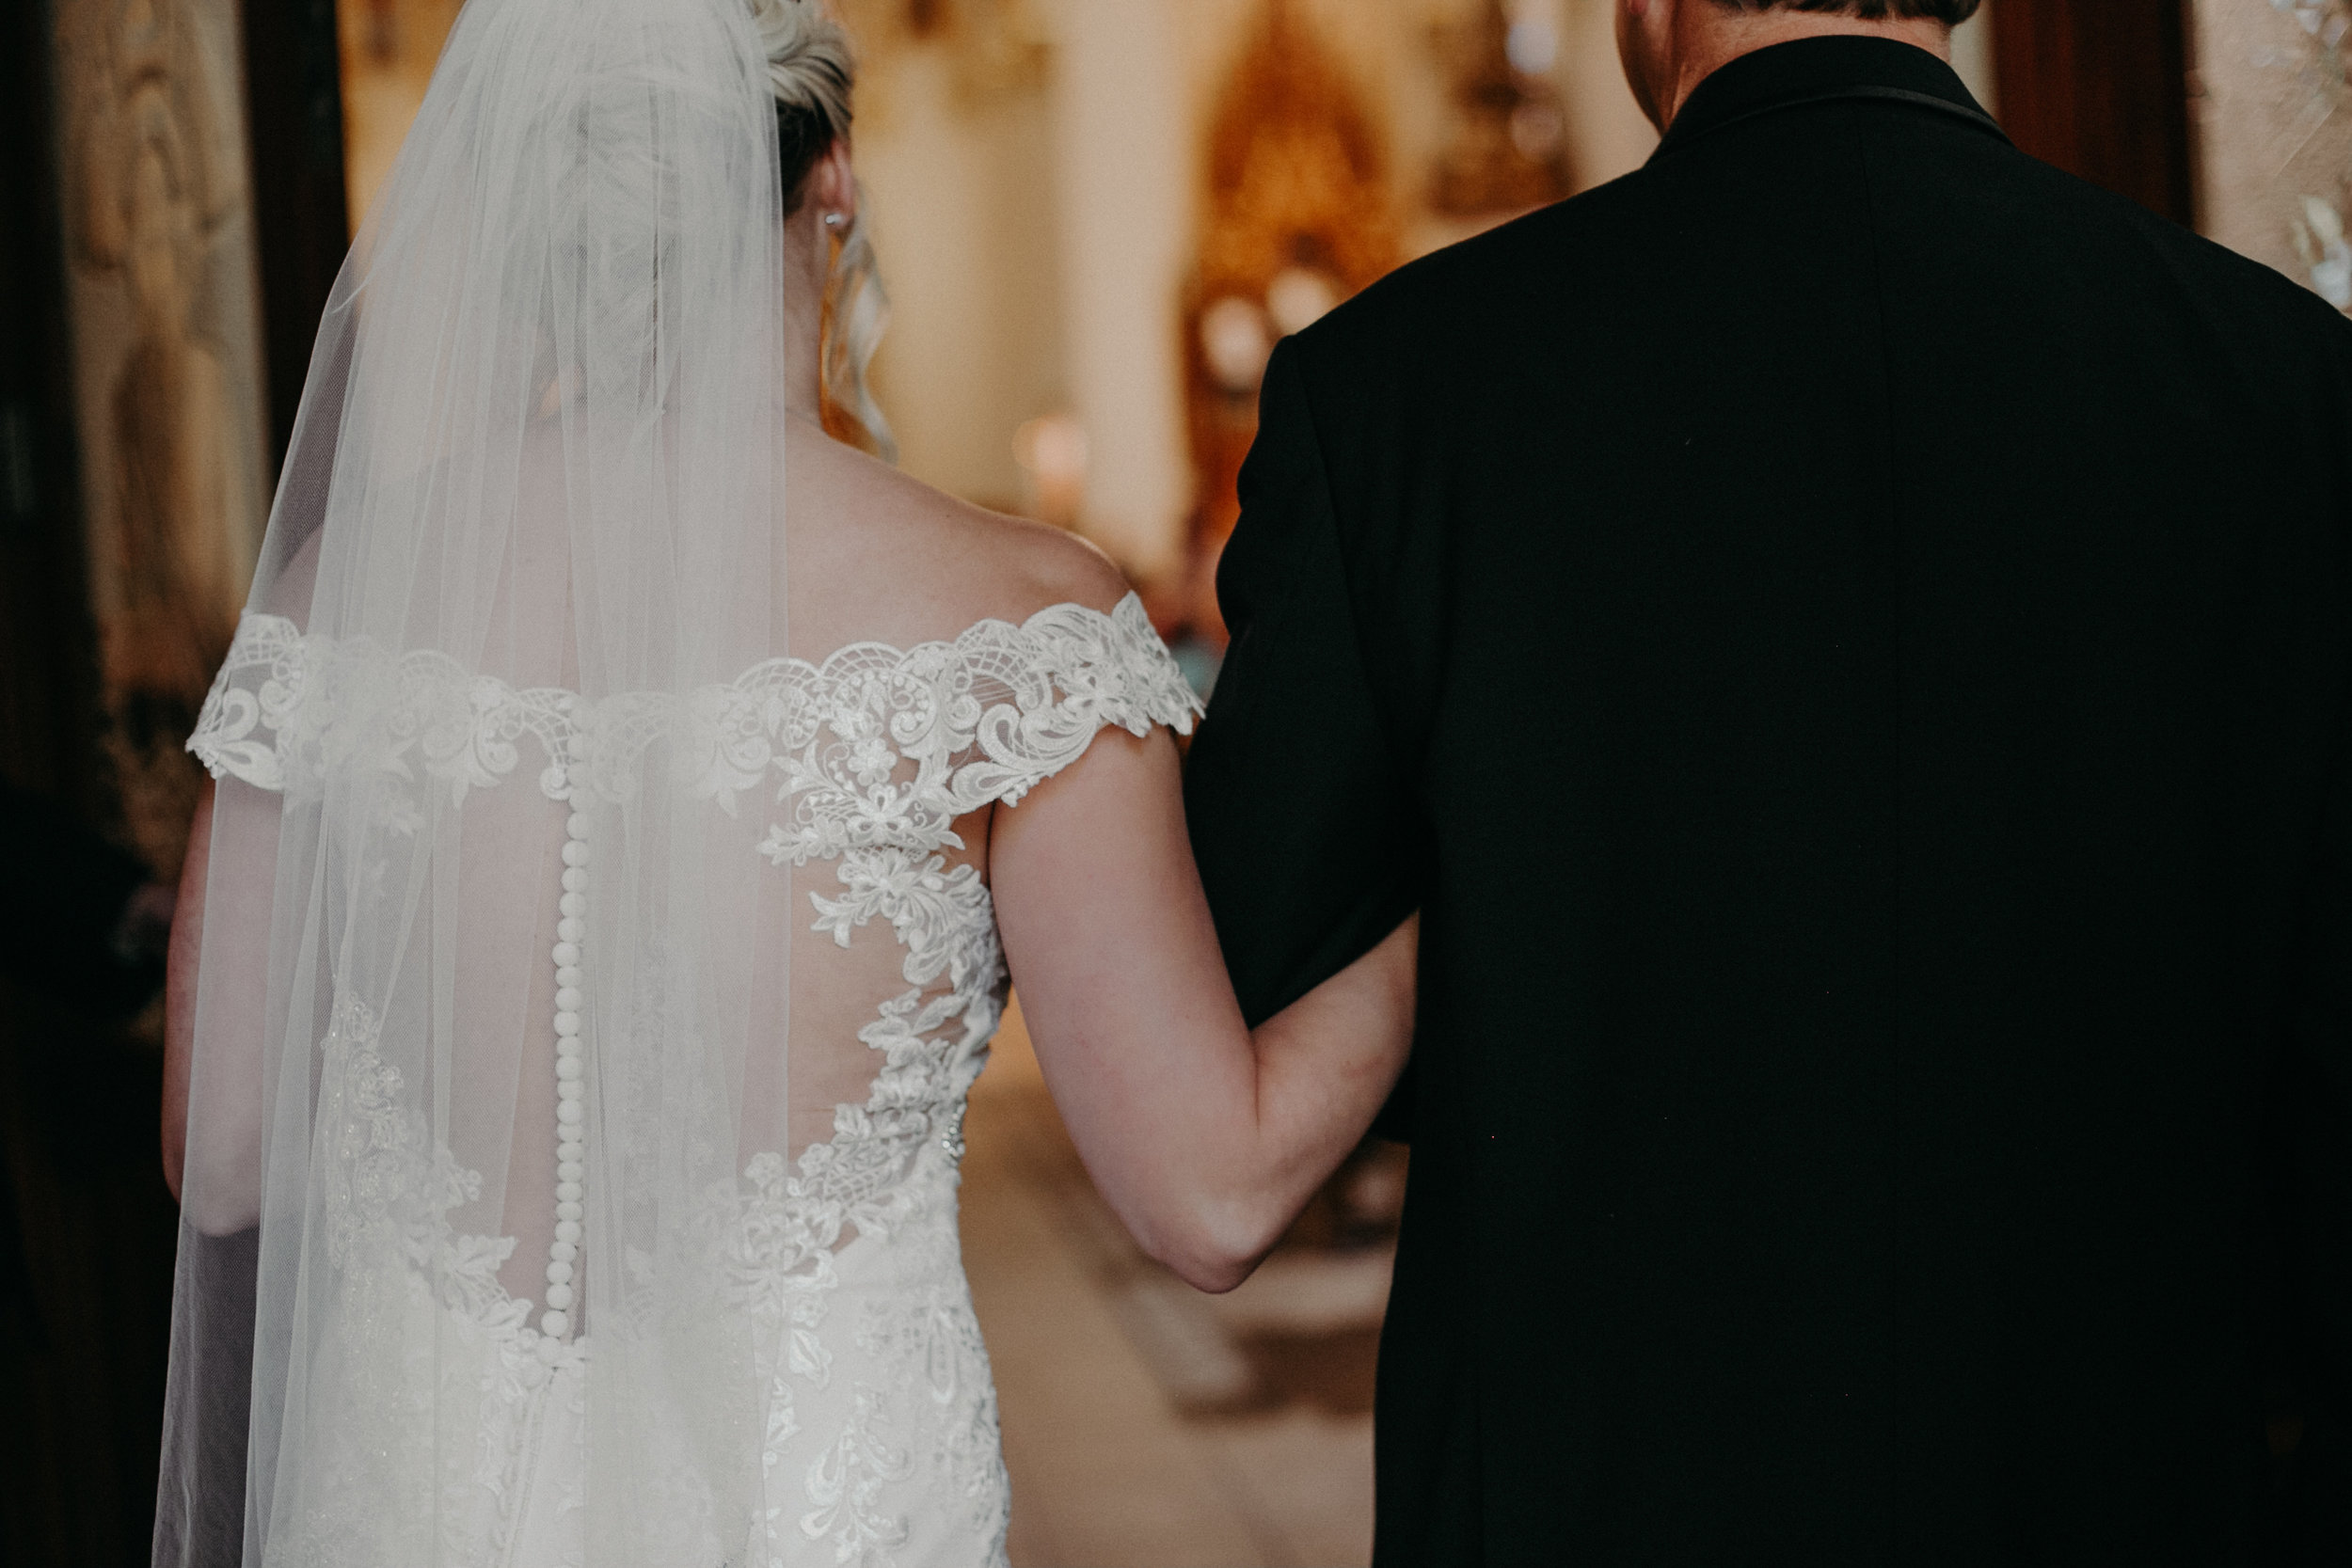 Marshfield WI wedding photographer Andrea Wagner captures bride walking down the aisle to her groom